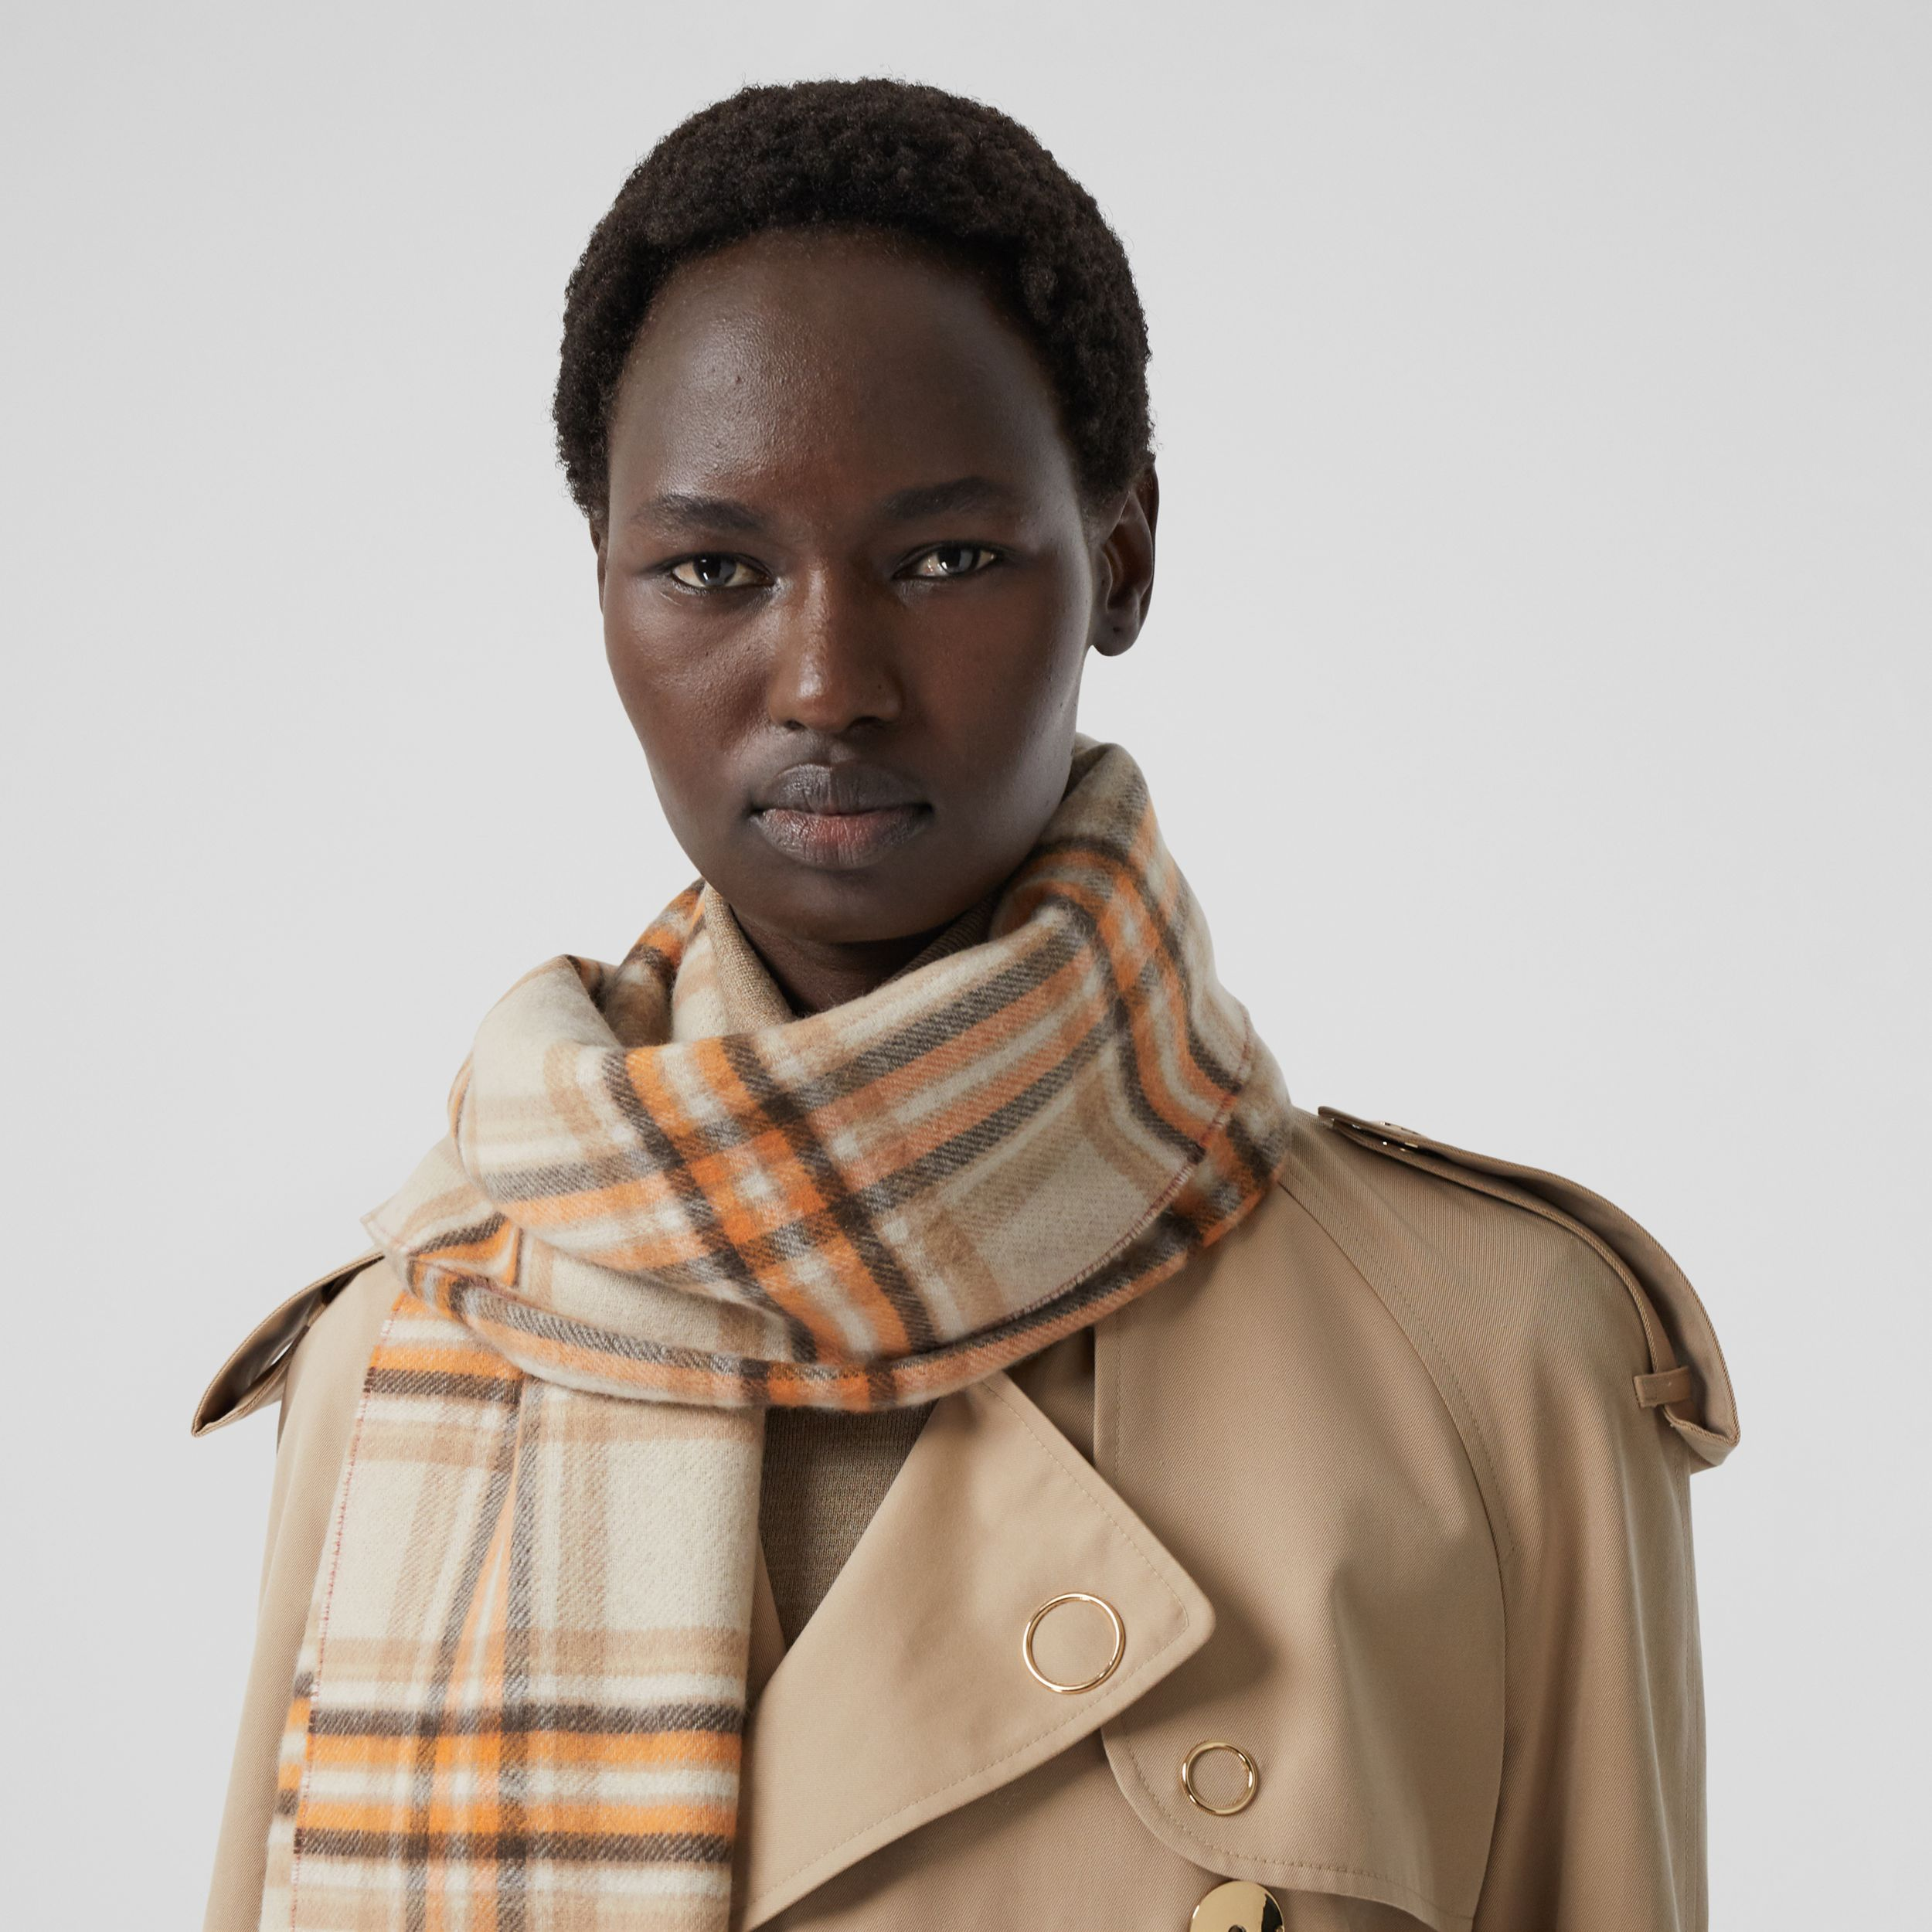 Reversible Check and Icon Stripe Cashmere Scarf in Beige | Burberry - 3